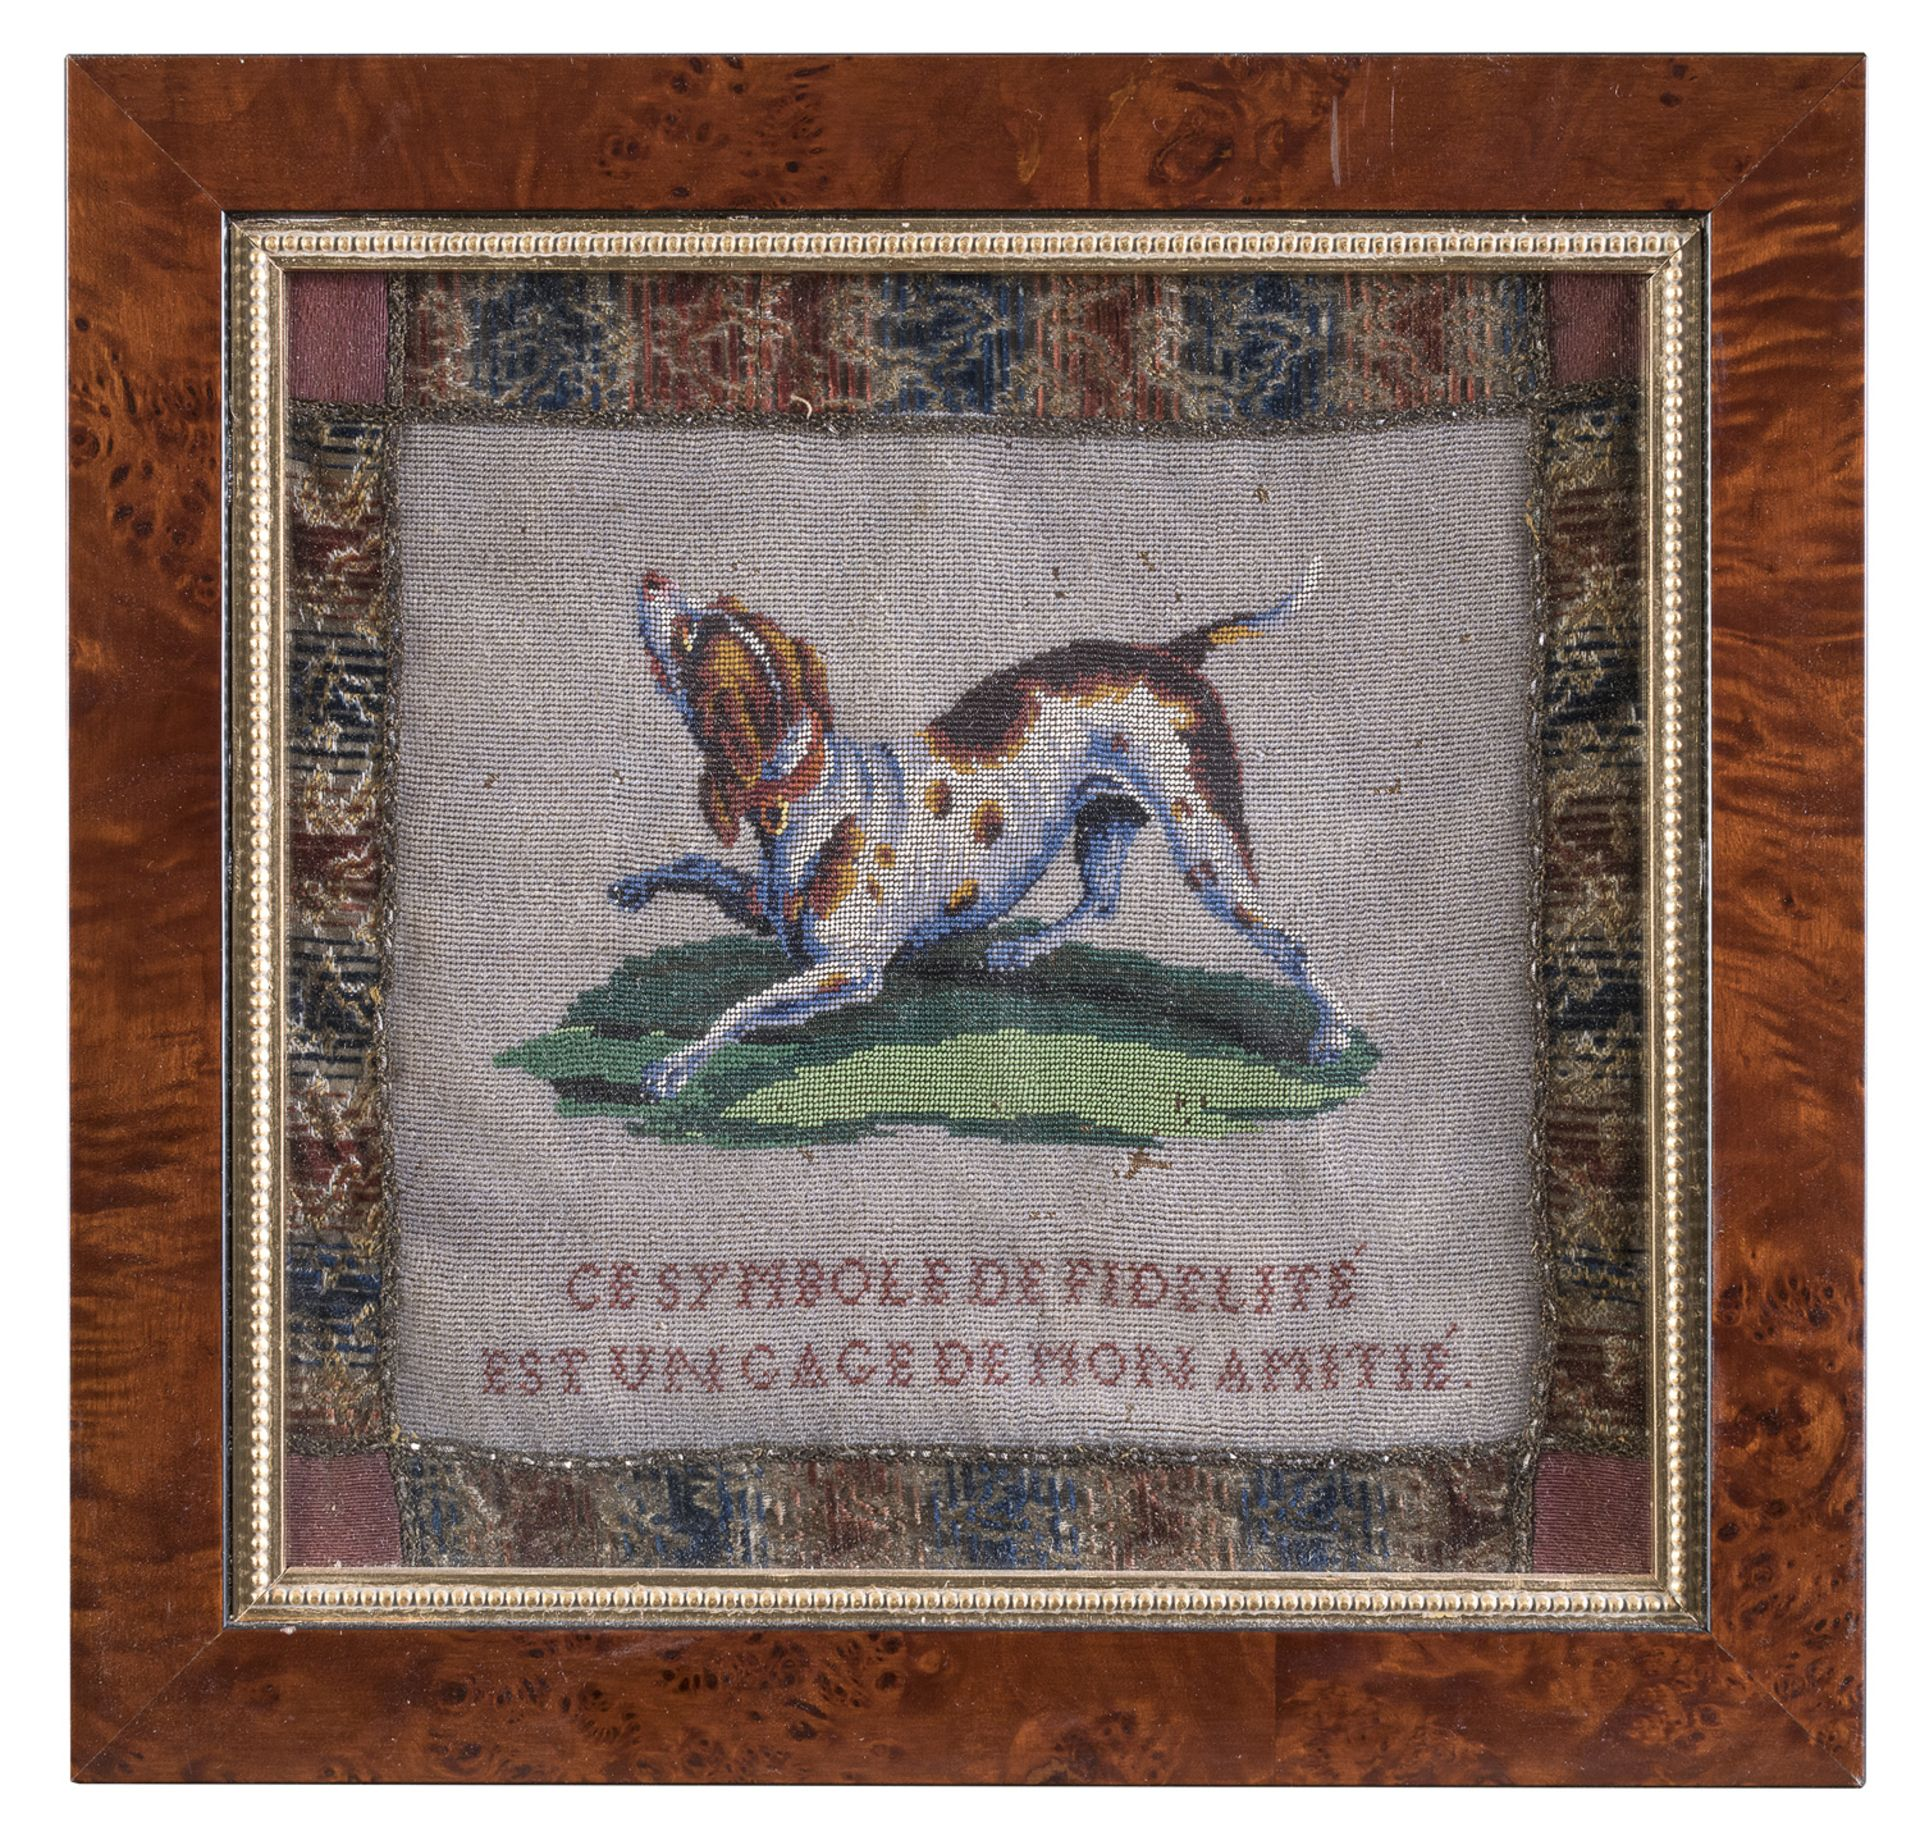 SMALL TAPESTRY MADE OF GLASS BEADS 20TH CENTURY